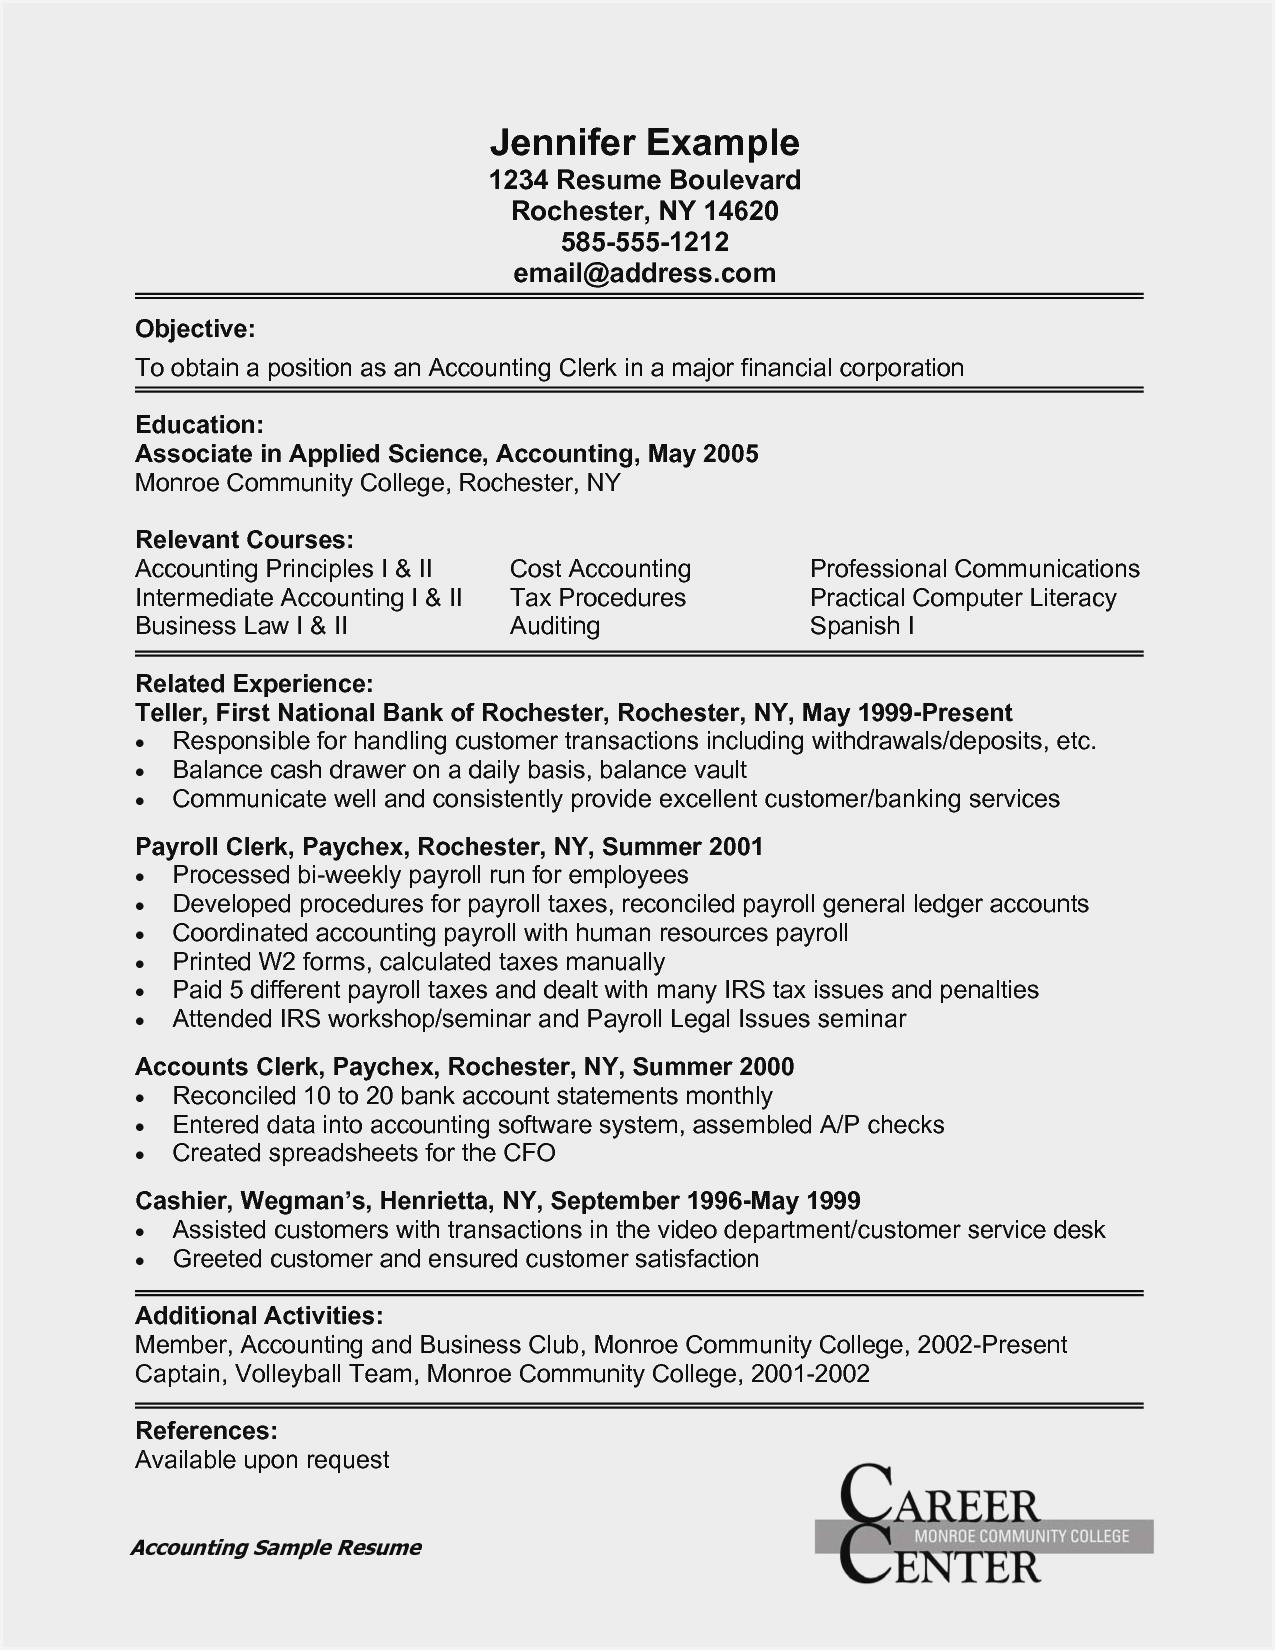 sample resume for accounting clerk position account job description high school student Resume Account Clerk Job Description For Resume